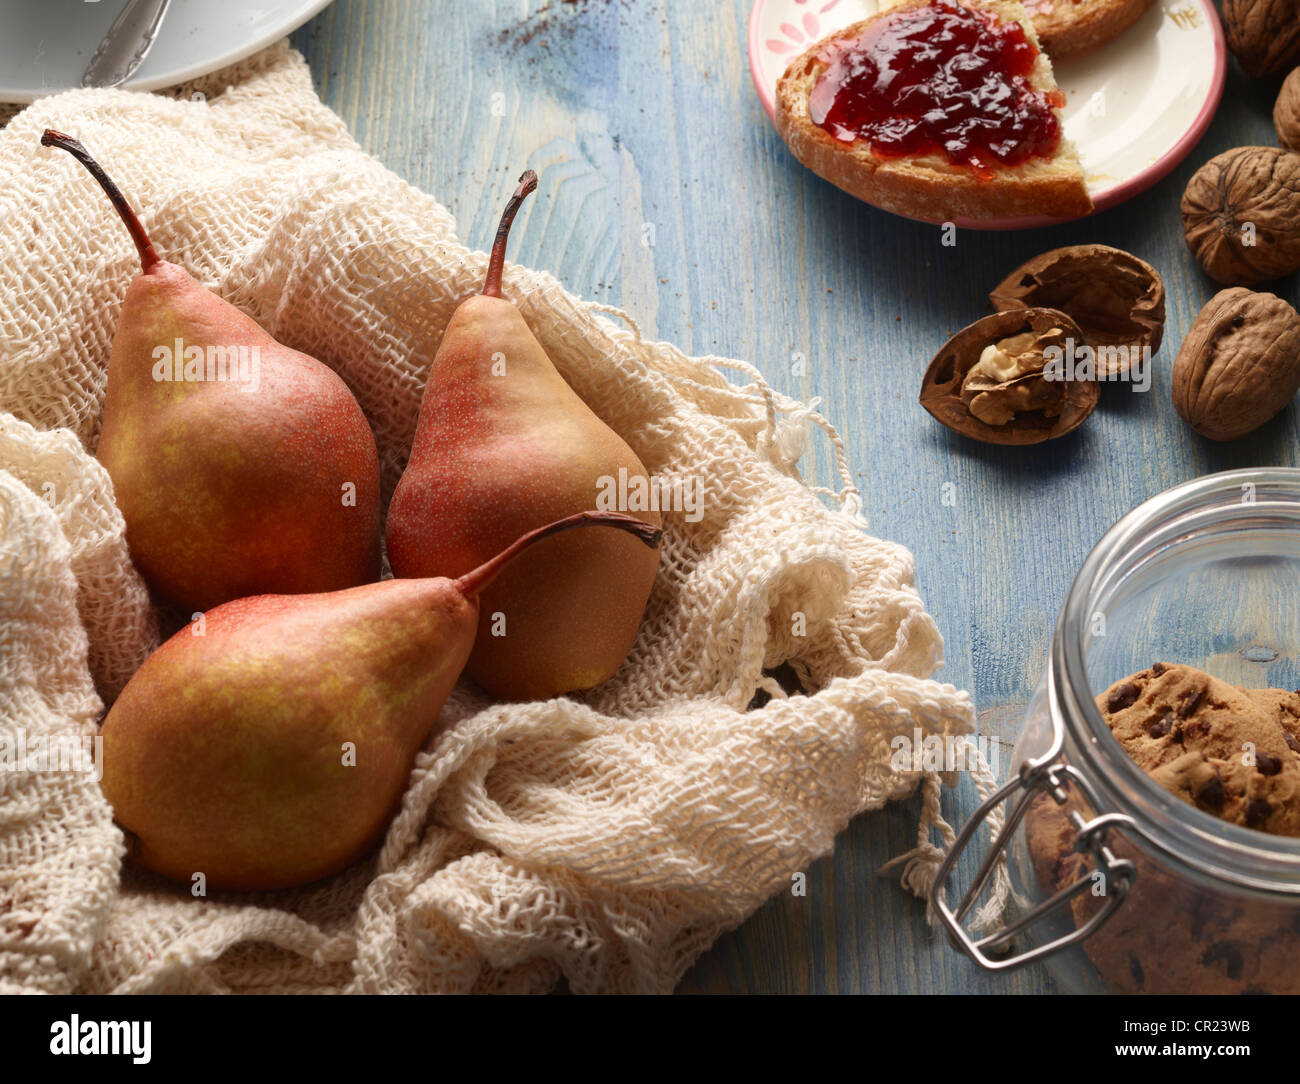 Pears, cookies, nuts and bread with jam Stock Photo